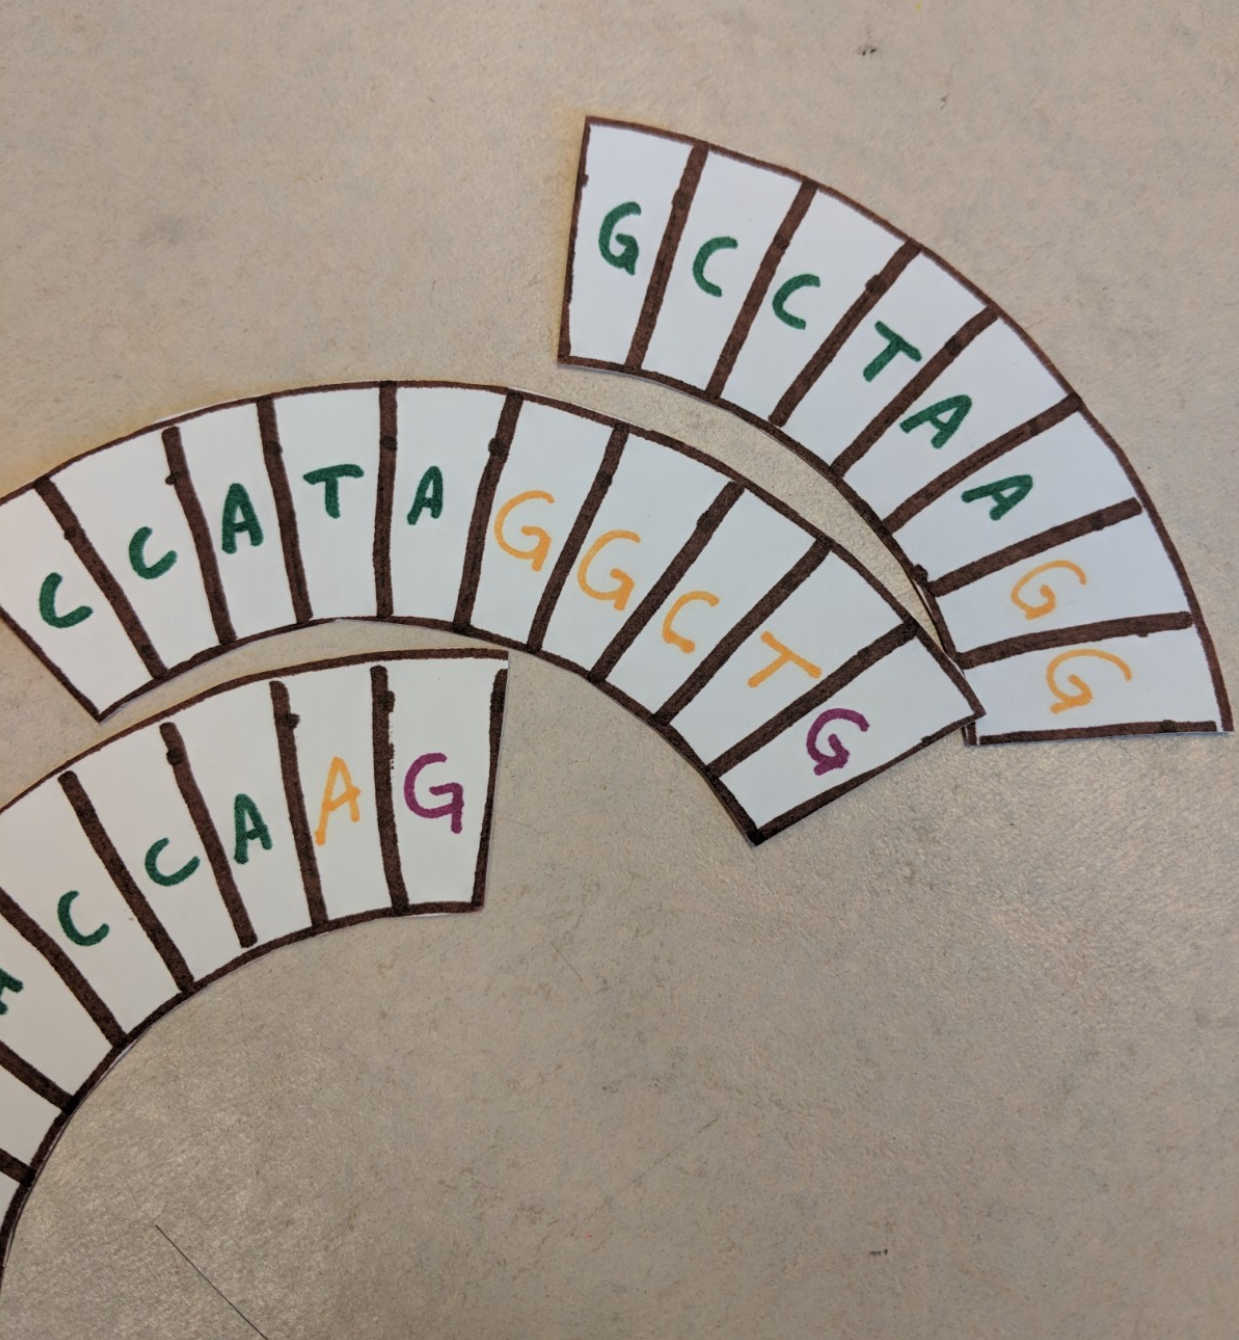 paper cutouts showing genomic letters A, G, T, and C.